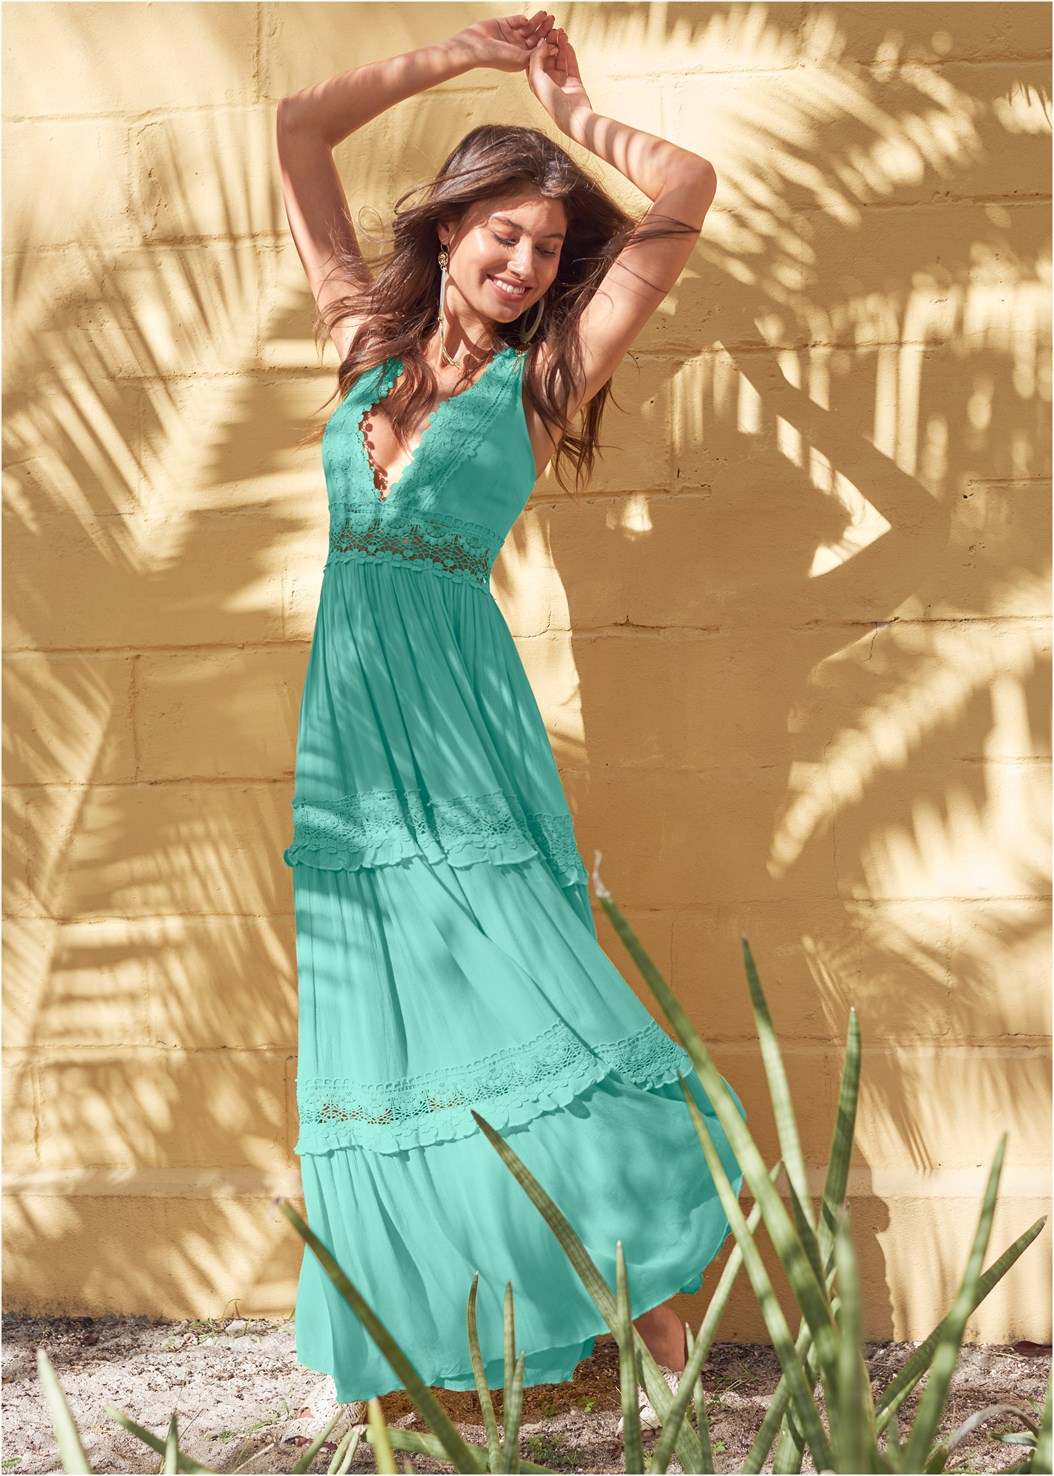 Tiered Maxi Dress,Lift It Up Backless And Strapless Plunge,Nubra Ultralite,Oversized Tassel Earrings,Beaded Crossbody